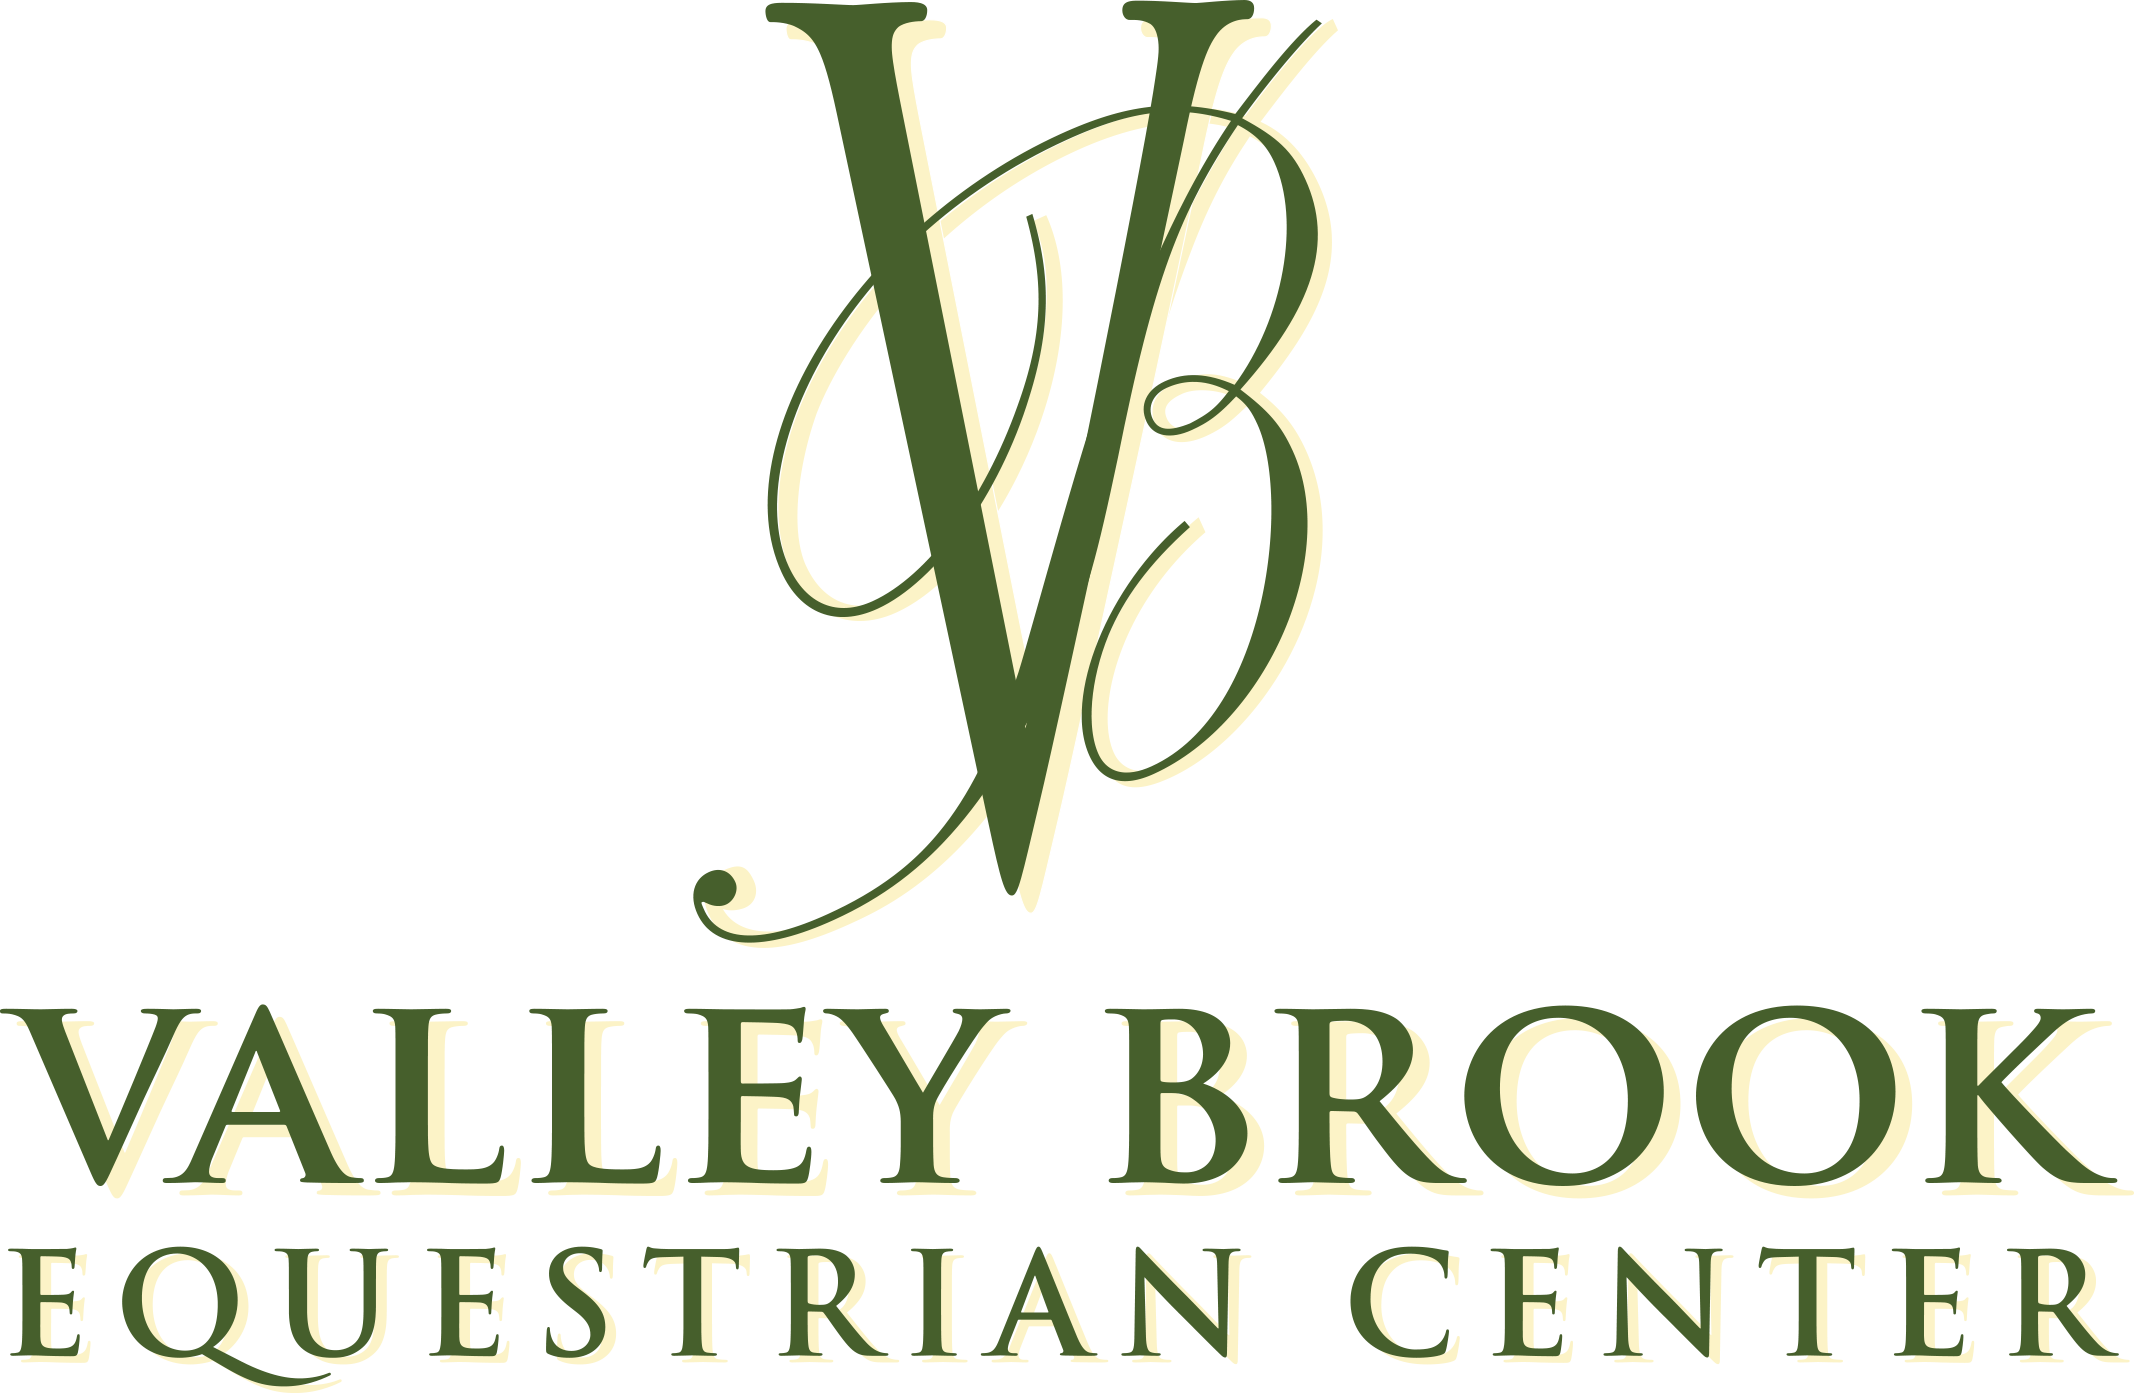 Valley Brook Equestrian Center